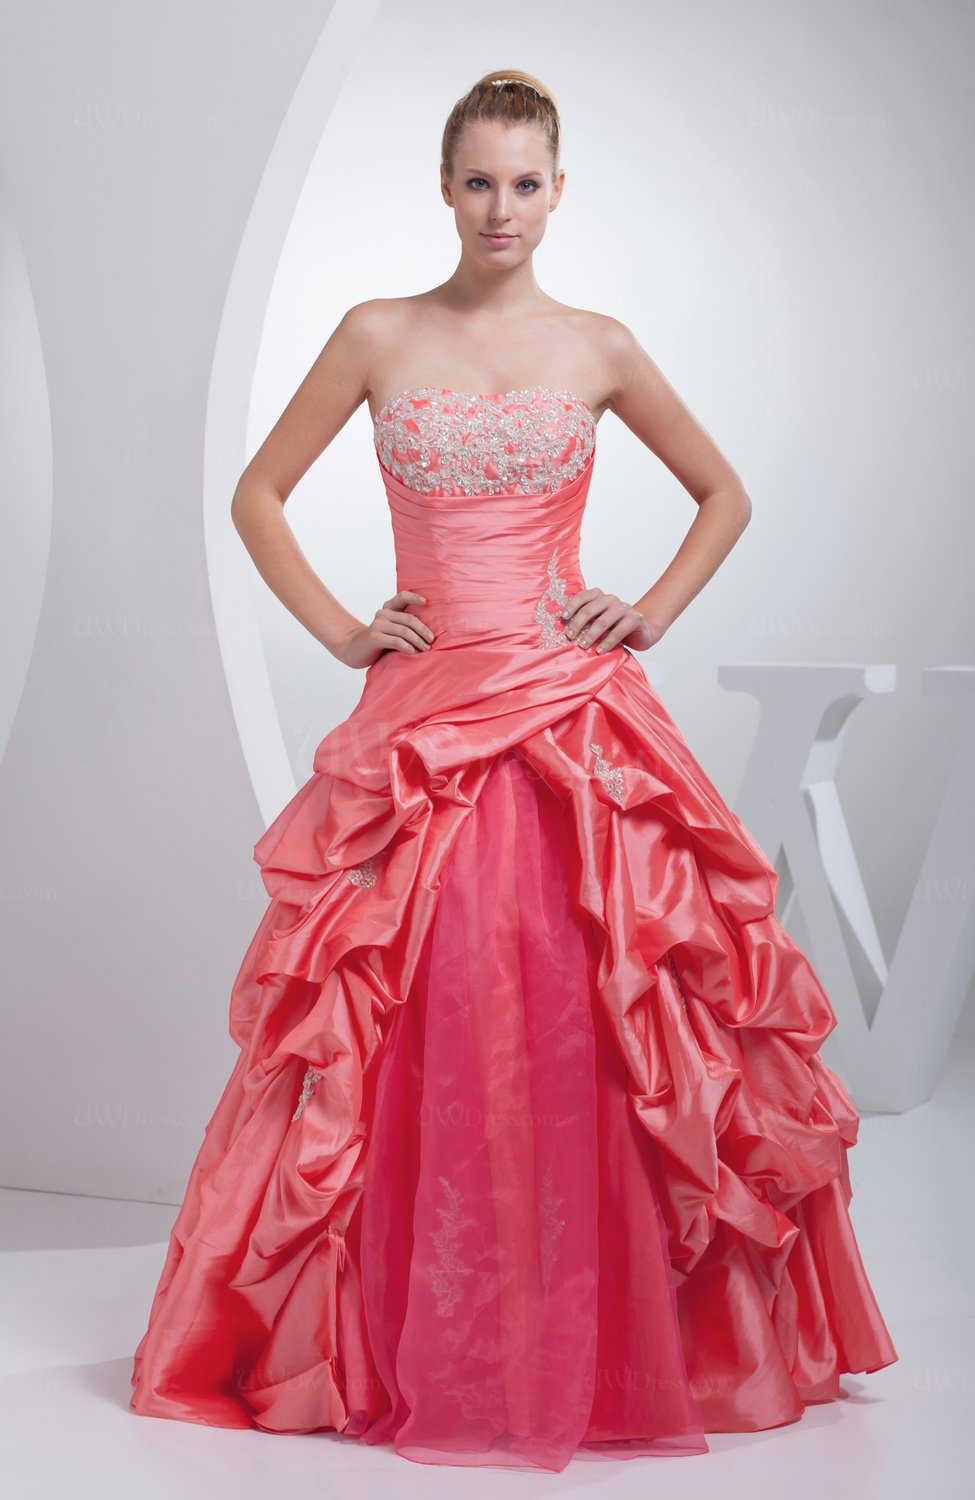 Red dress disney princess 840